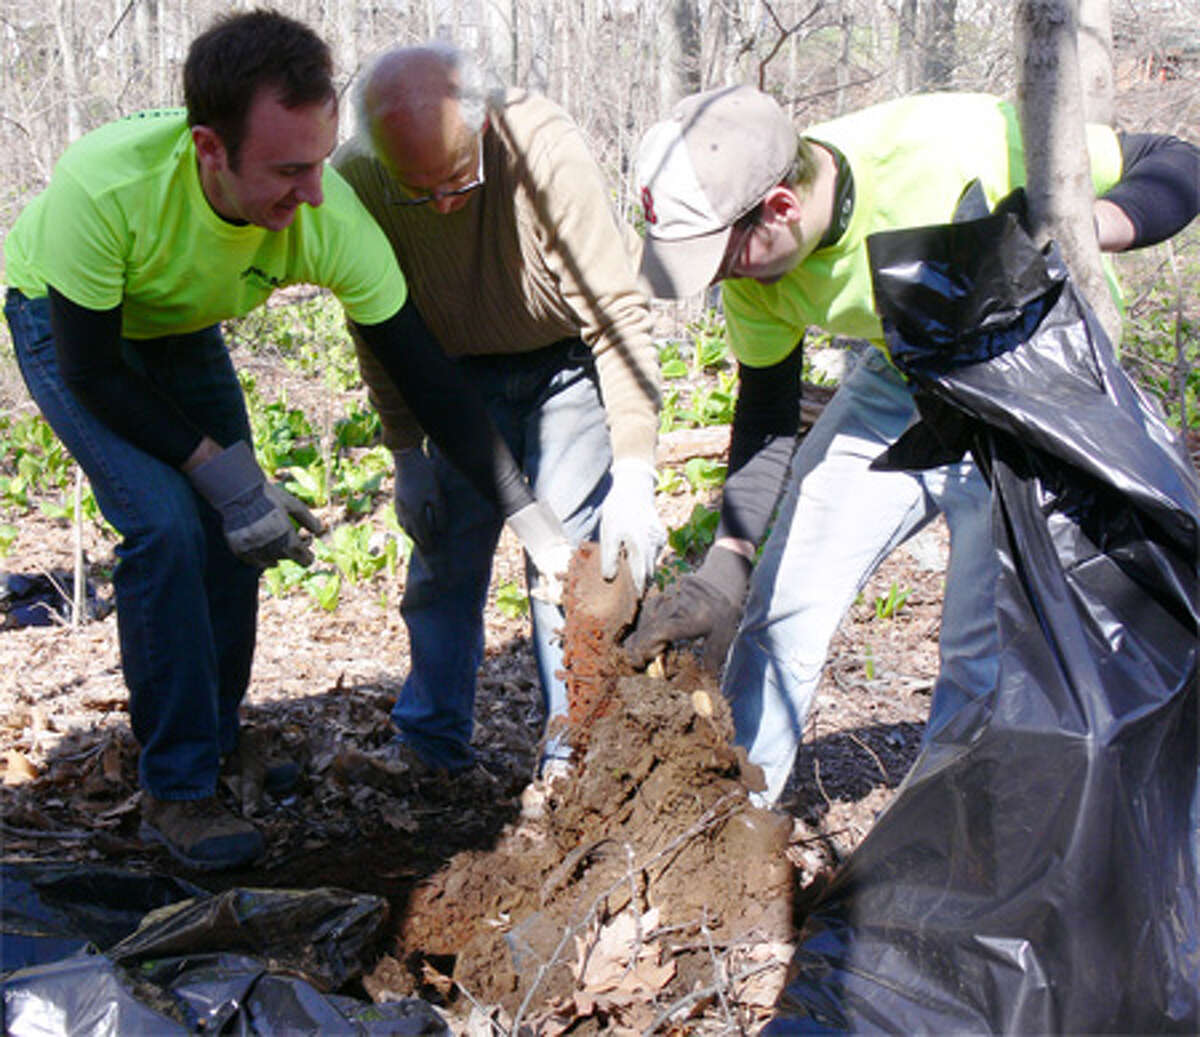 From left, Shelton residents Chris Dubuque, John Penelli and Tim Schwartz pull an old, rusted metallic car part out of the ground for proper disposal.